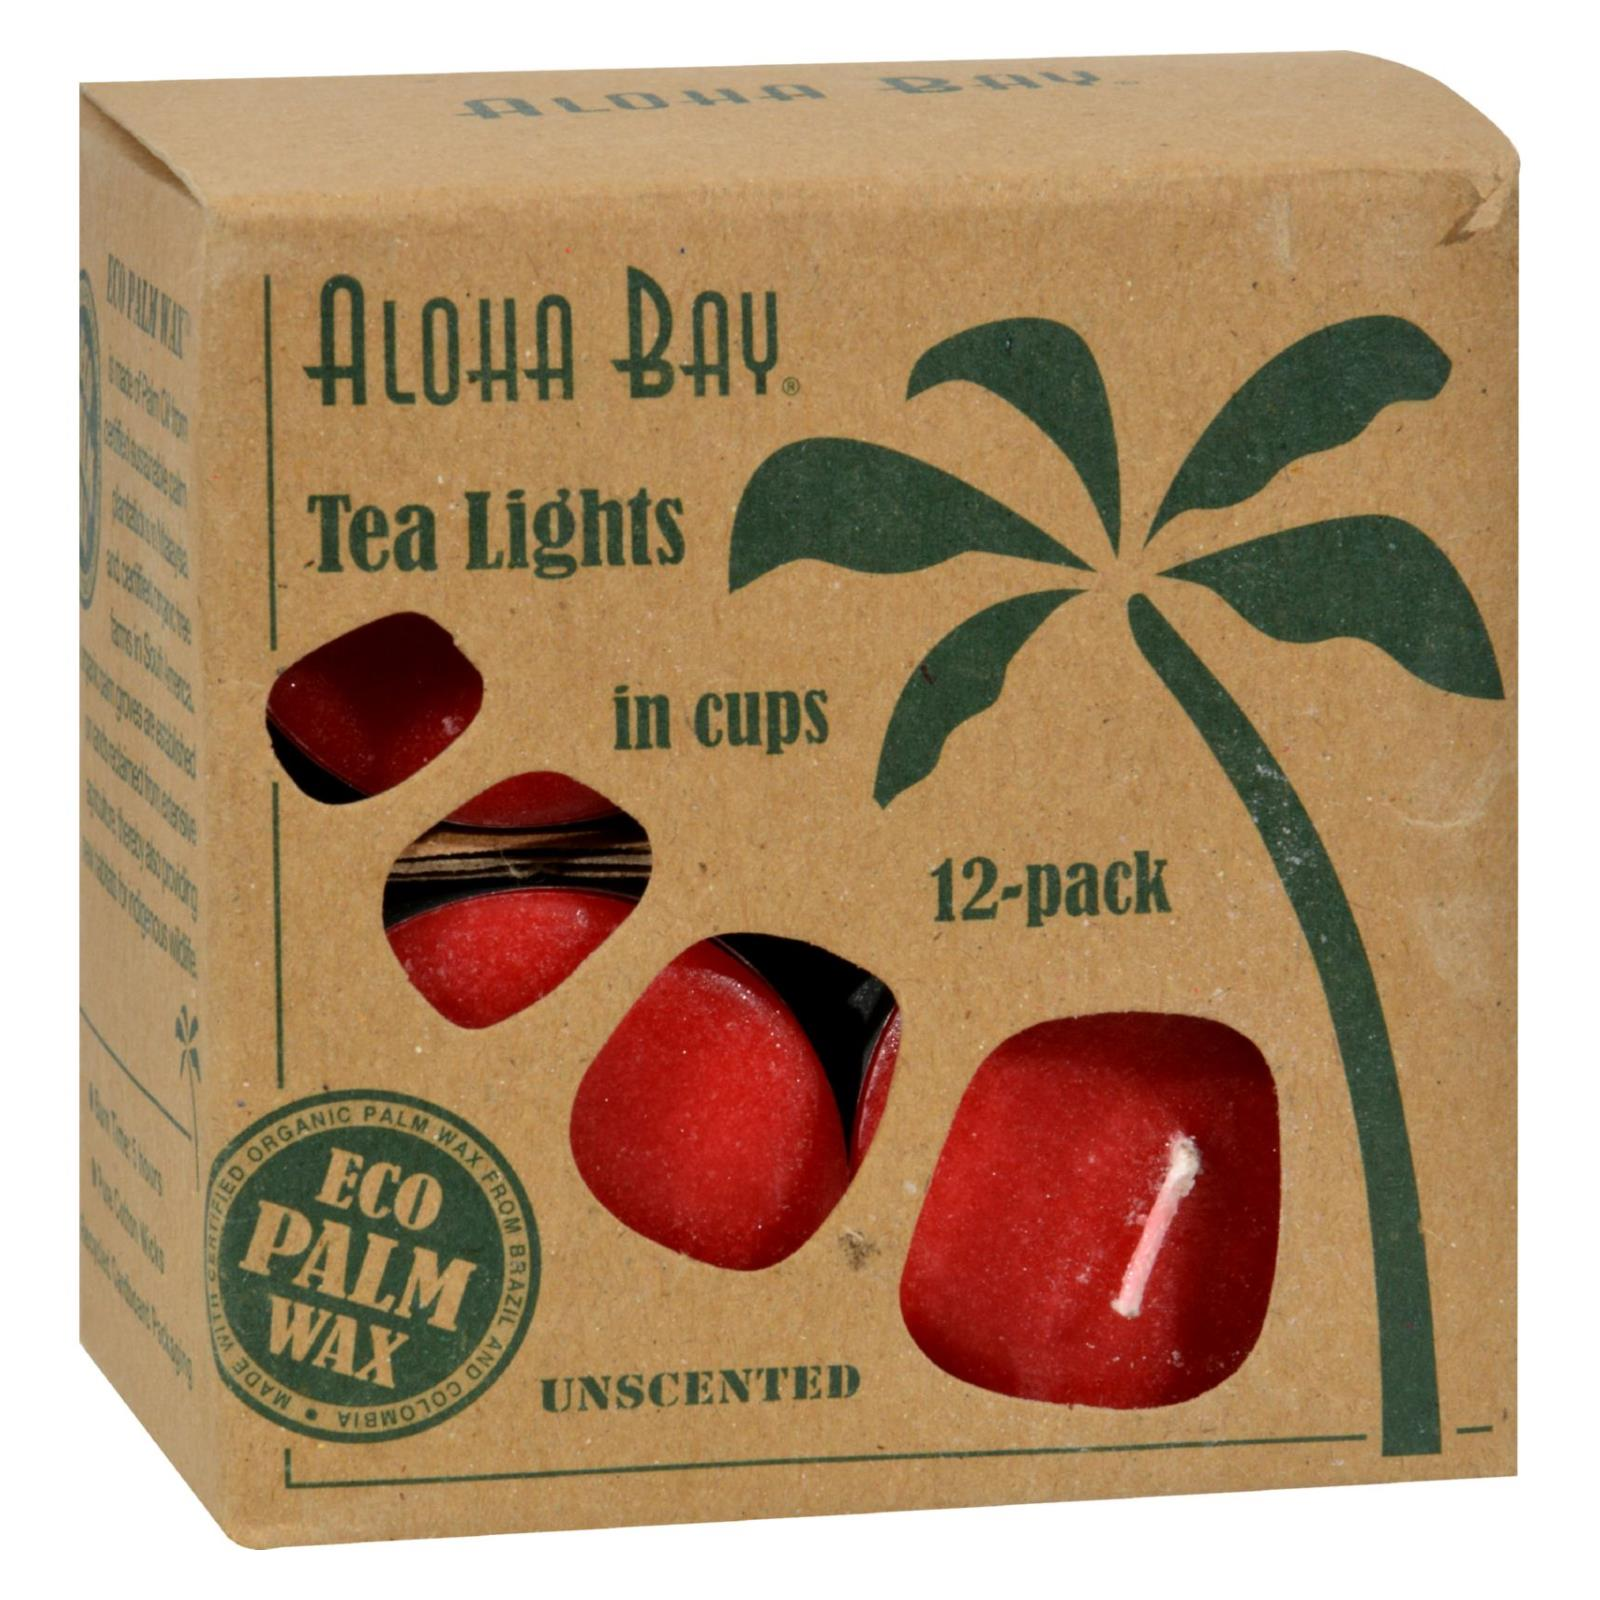 Buy Aloha Bay Tea Light - Red - 12/.7 oz - Tealights from Veroeco.com